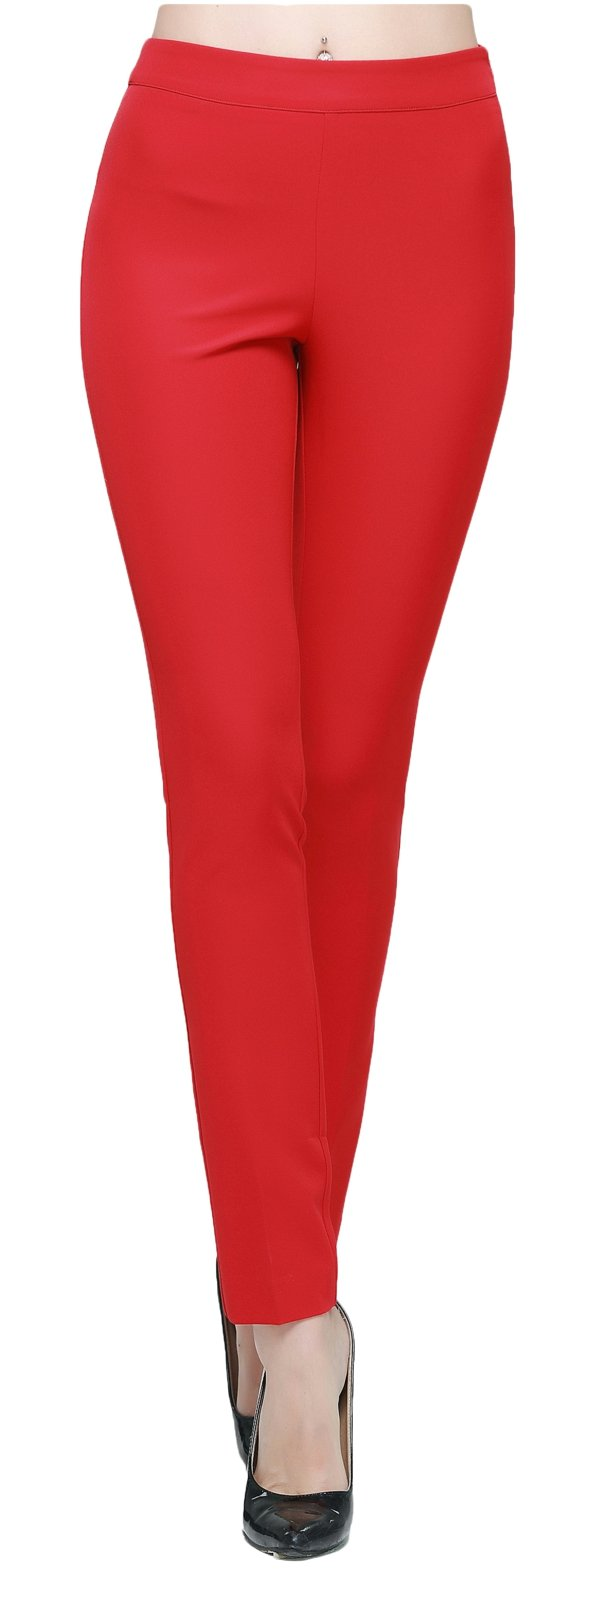 Orolay Women's Ankle Length Trousers High-Waisted Red 8